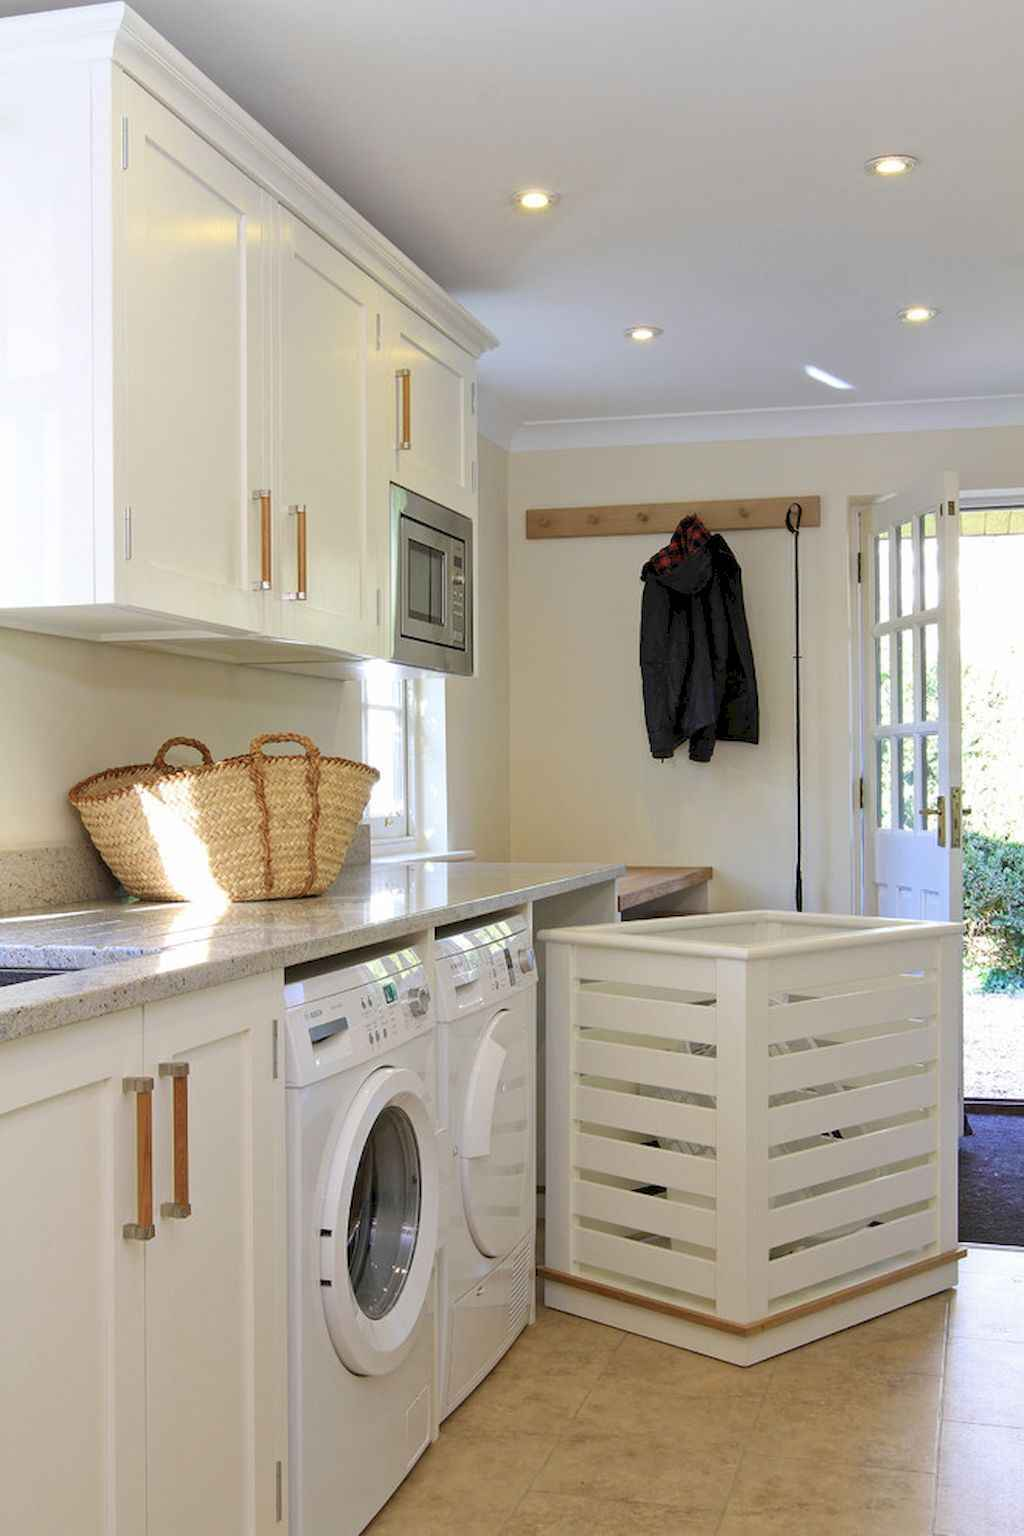 45 Rustic Farmhouse Laundry Room Design Ideas and Makeover (33)